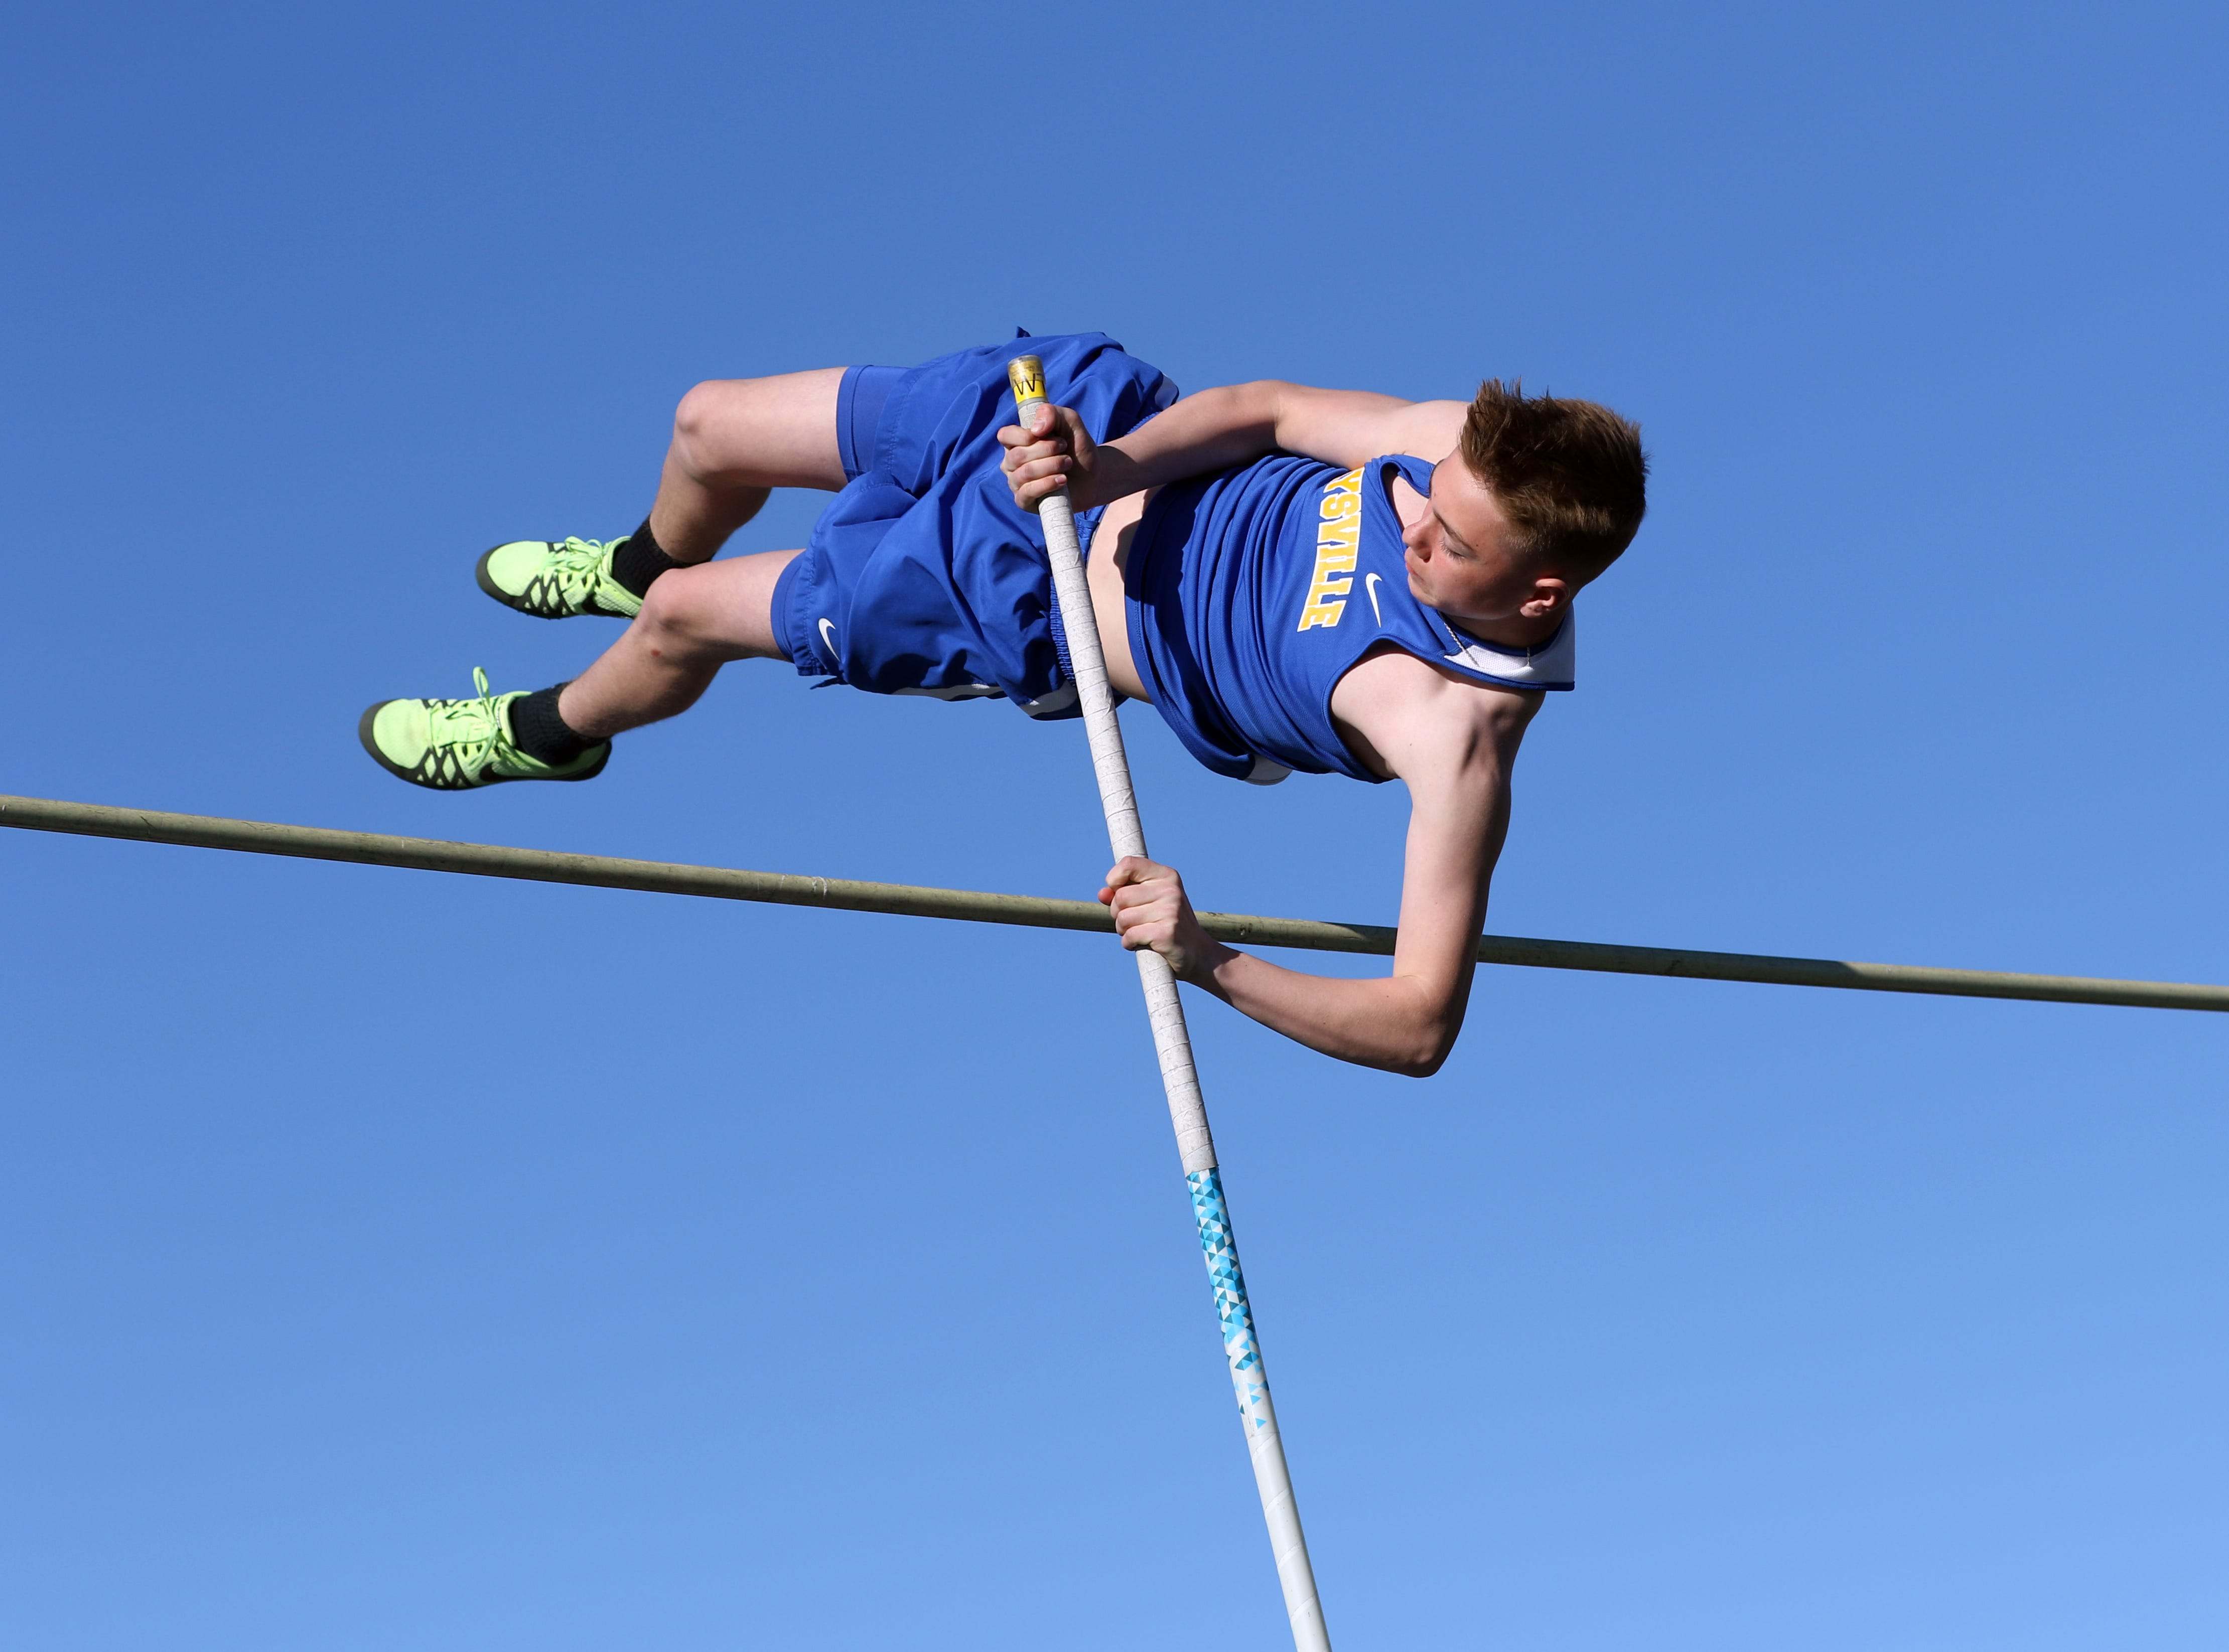 Maysville's Codah Bunting wins the pole vault competition during Tuesday's tri-meet between Sheridan, New Lexington and host Maysville.